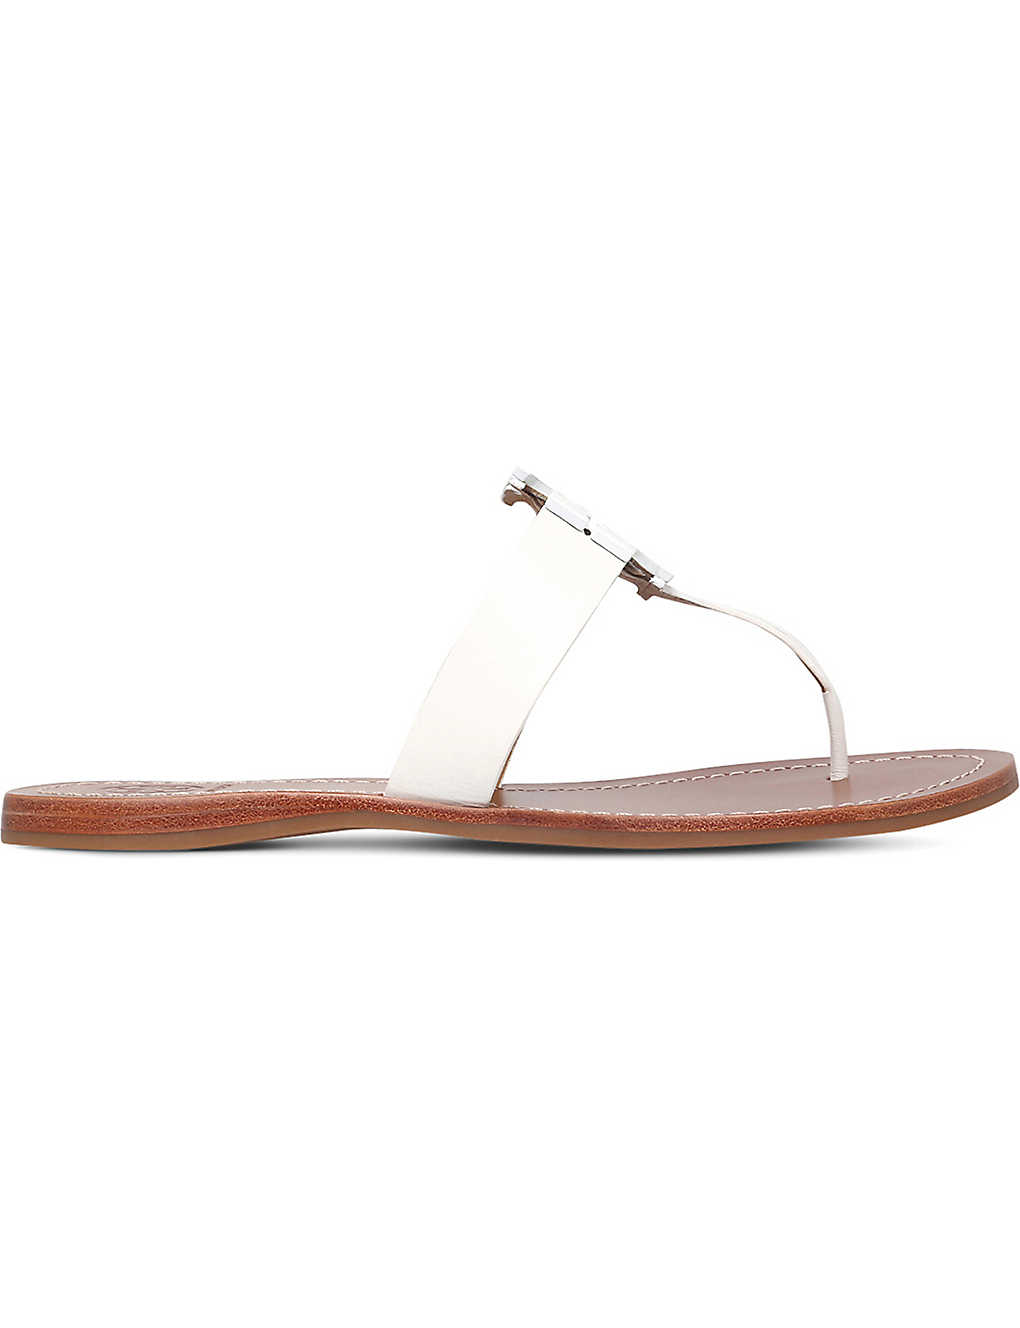 bac29d8eaf8 TORY BURCH - Moore 2 leather sandals